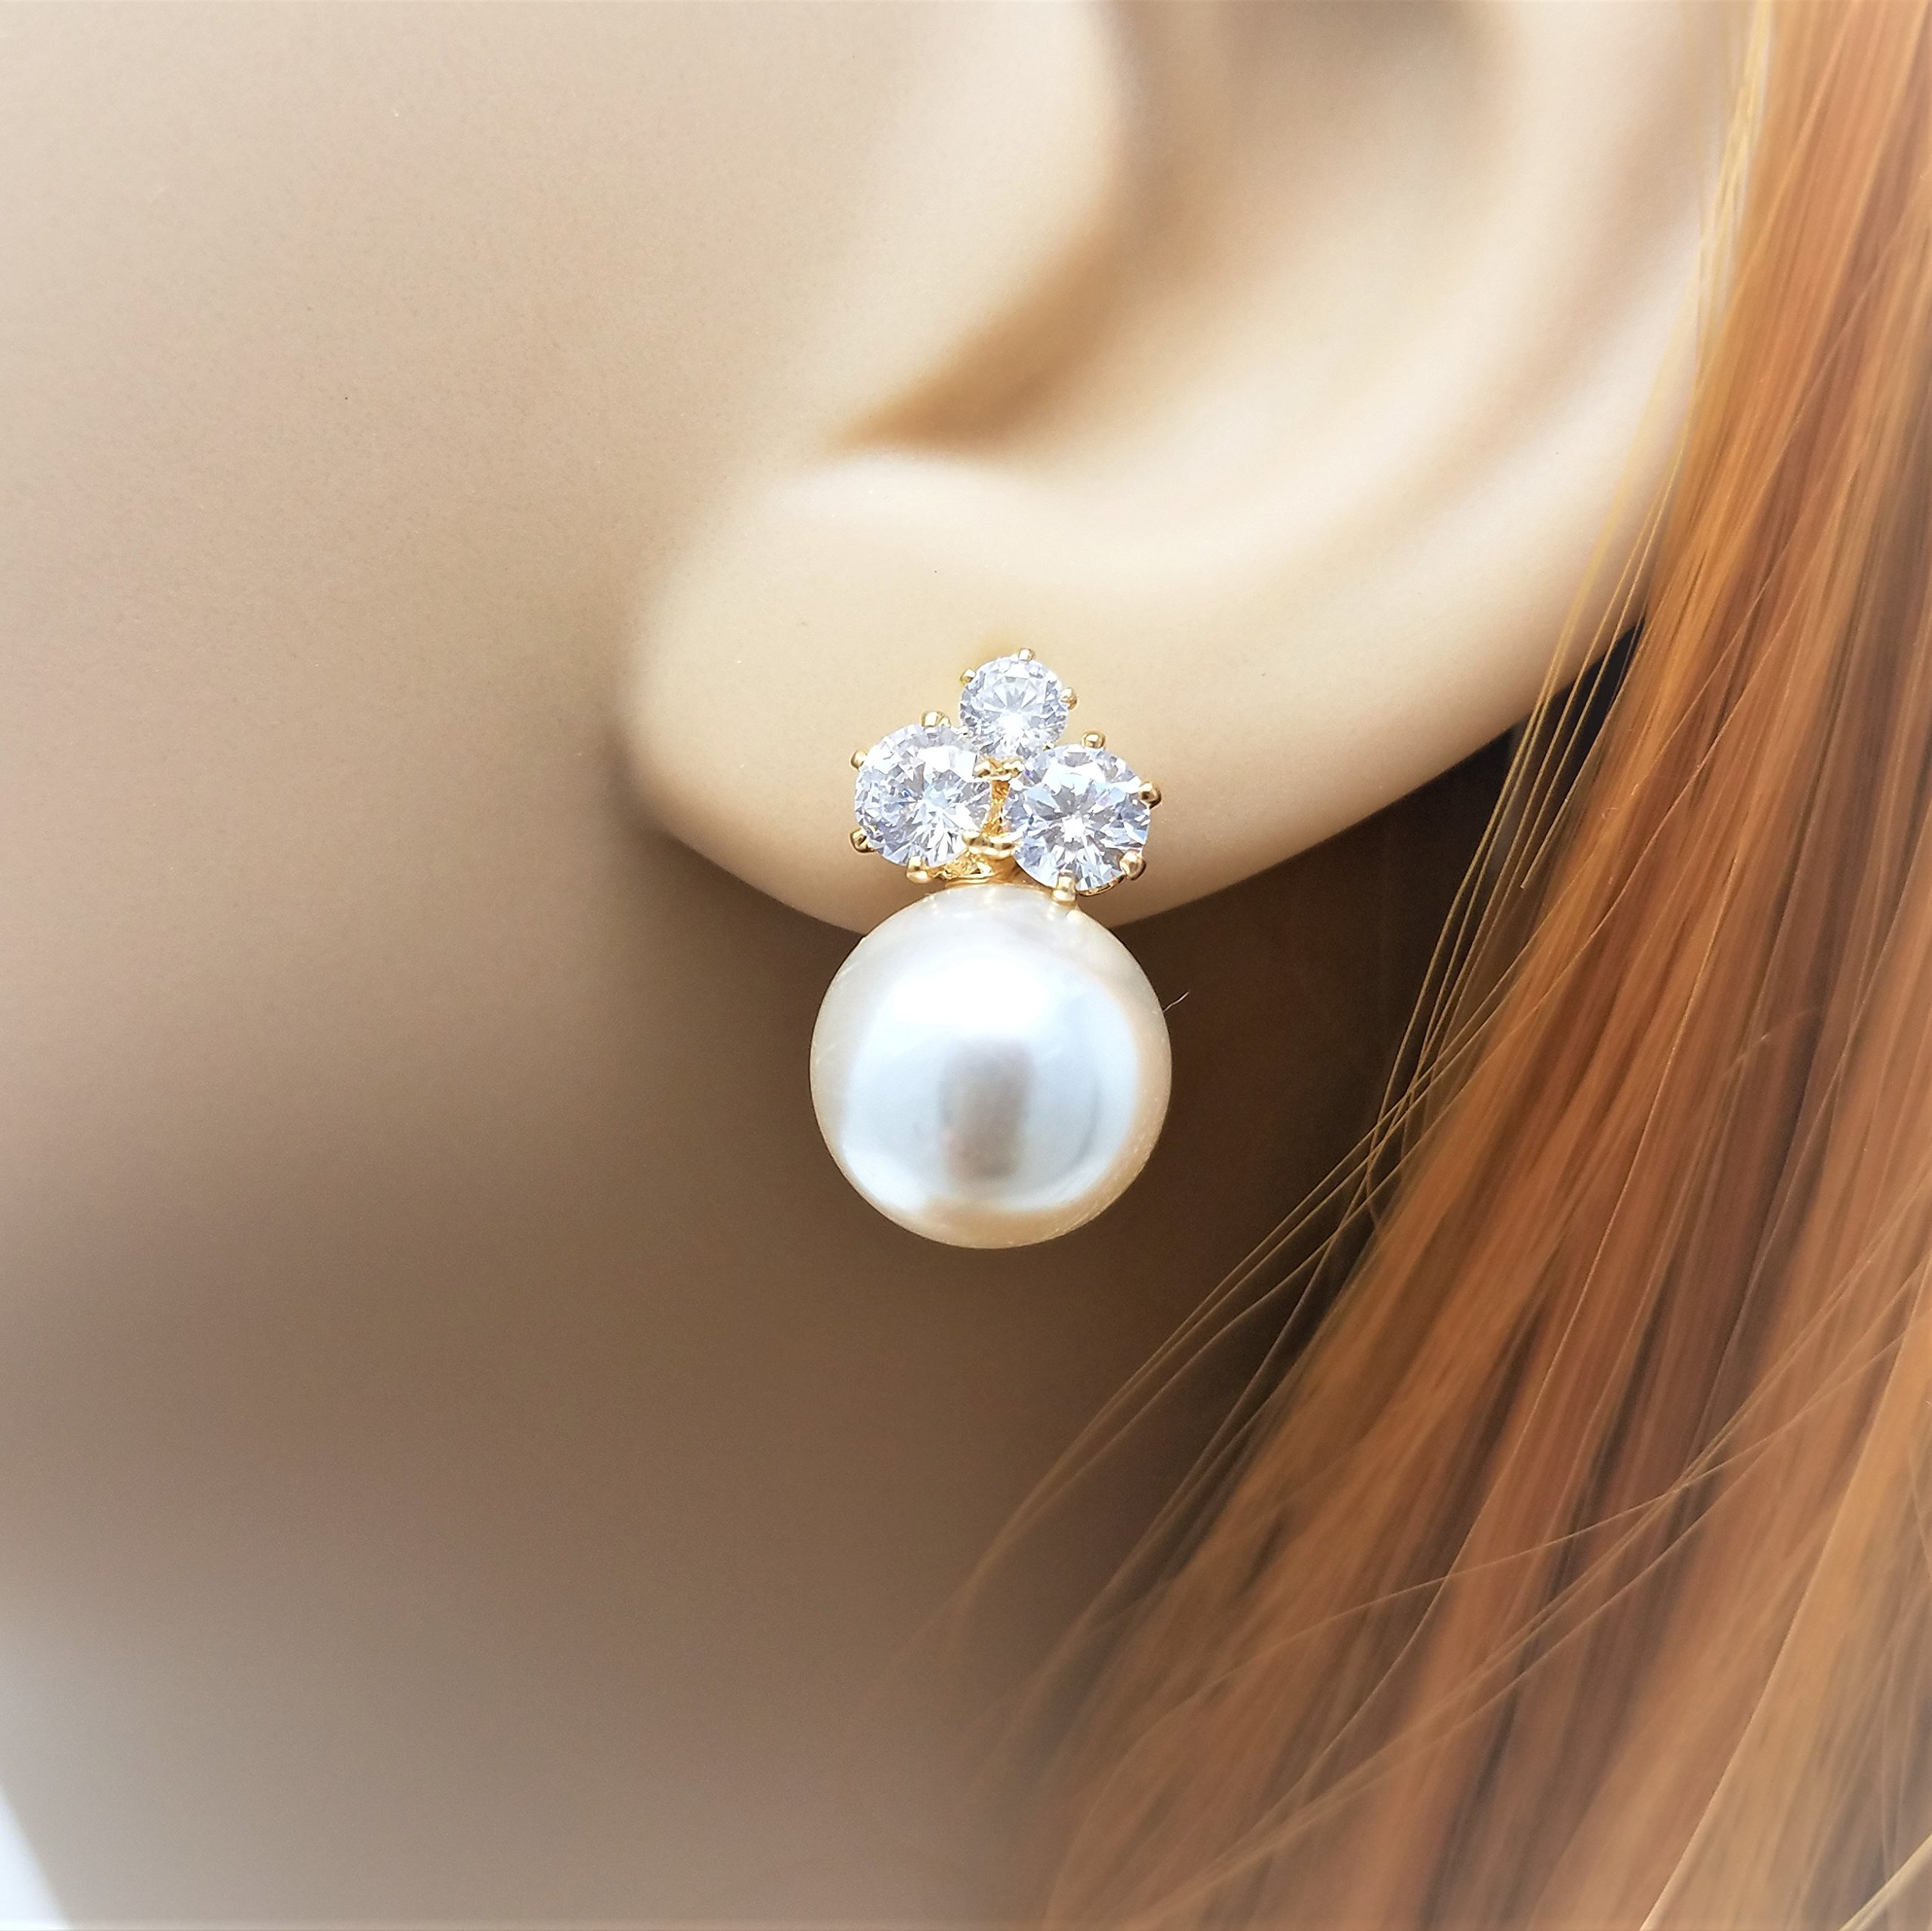 Bridesmaid Gifts - Elegant Pearl & Triple CZ Earrings (8mm, Simulated Pearl) by Bride Dazzle (Image #2)